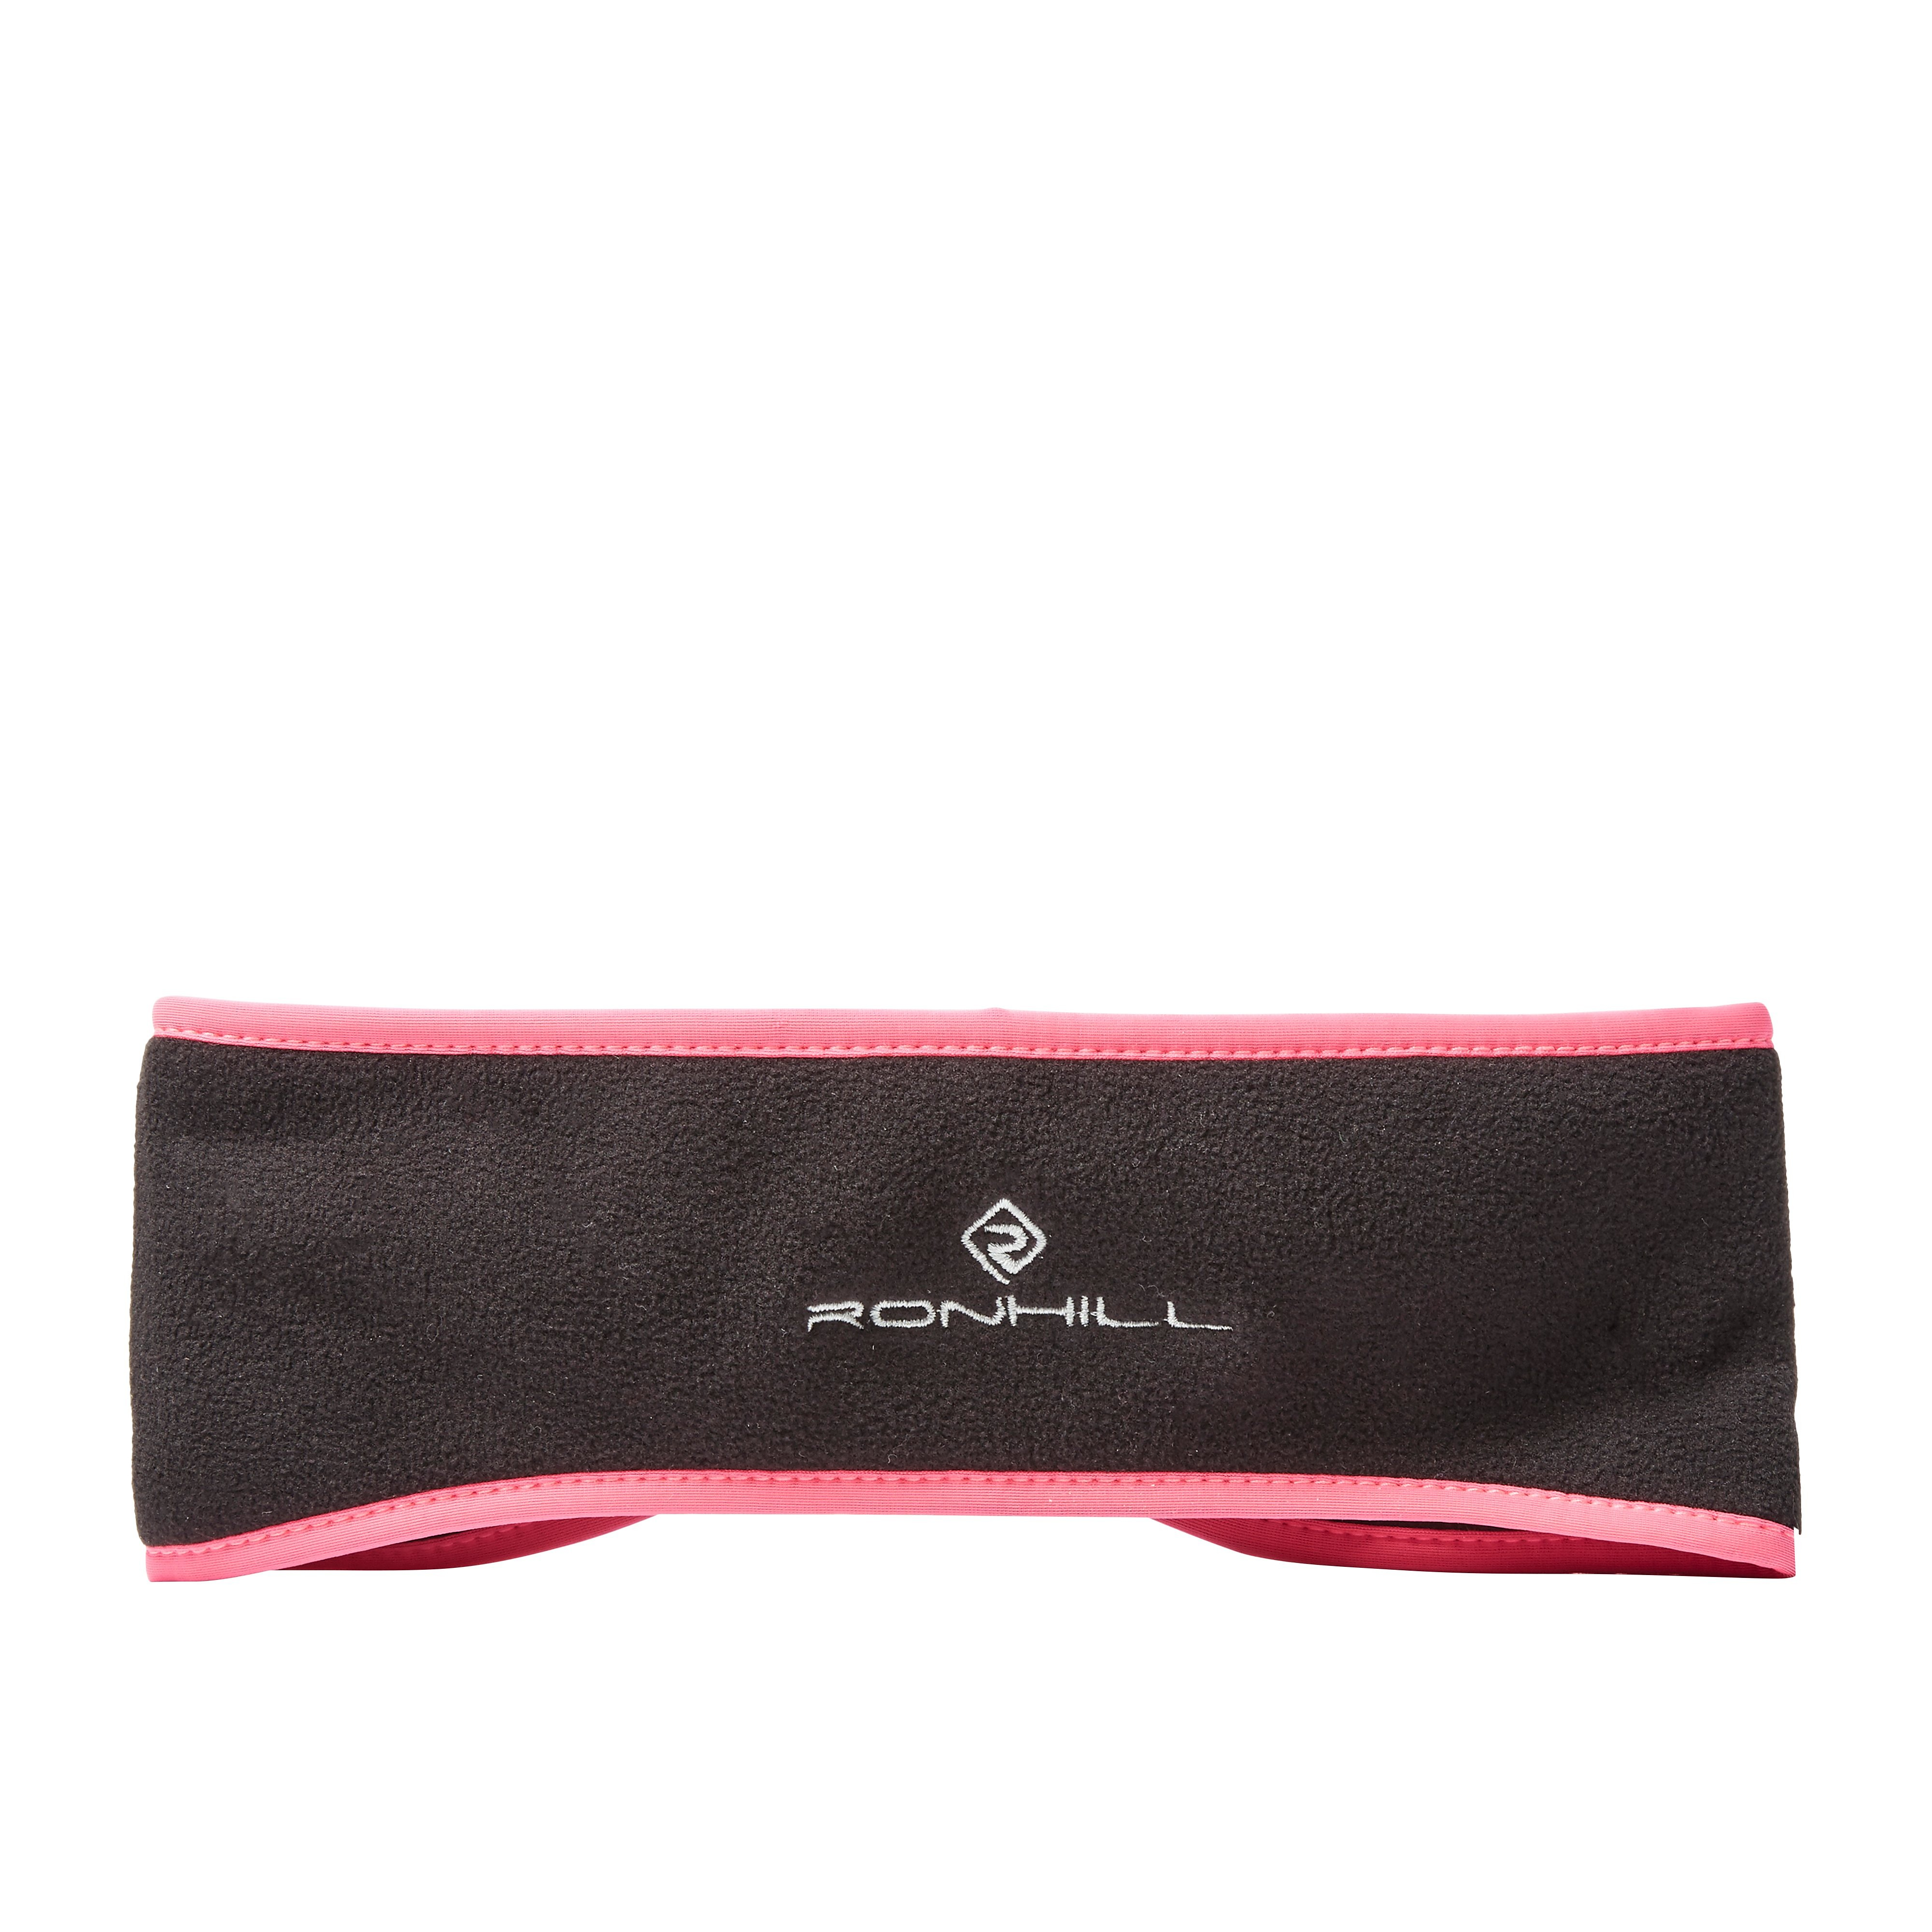 Ronhill Run Headband